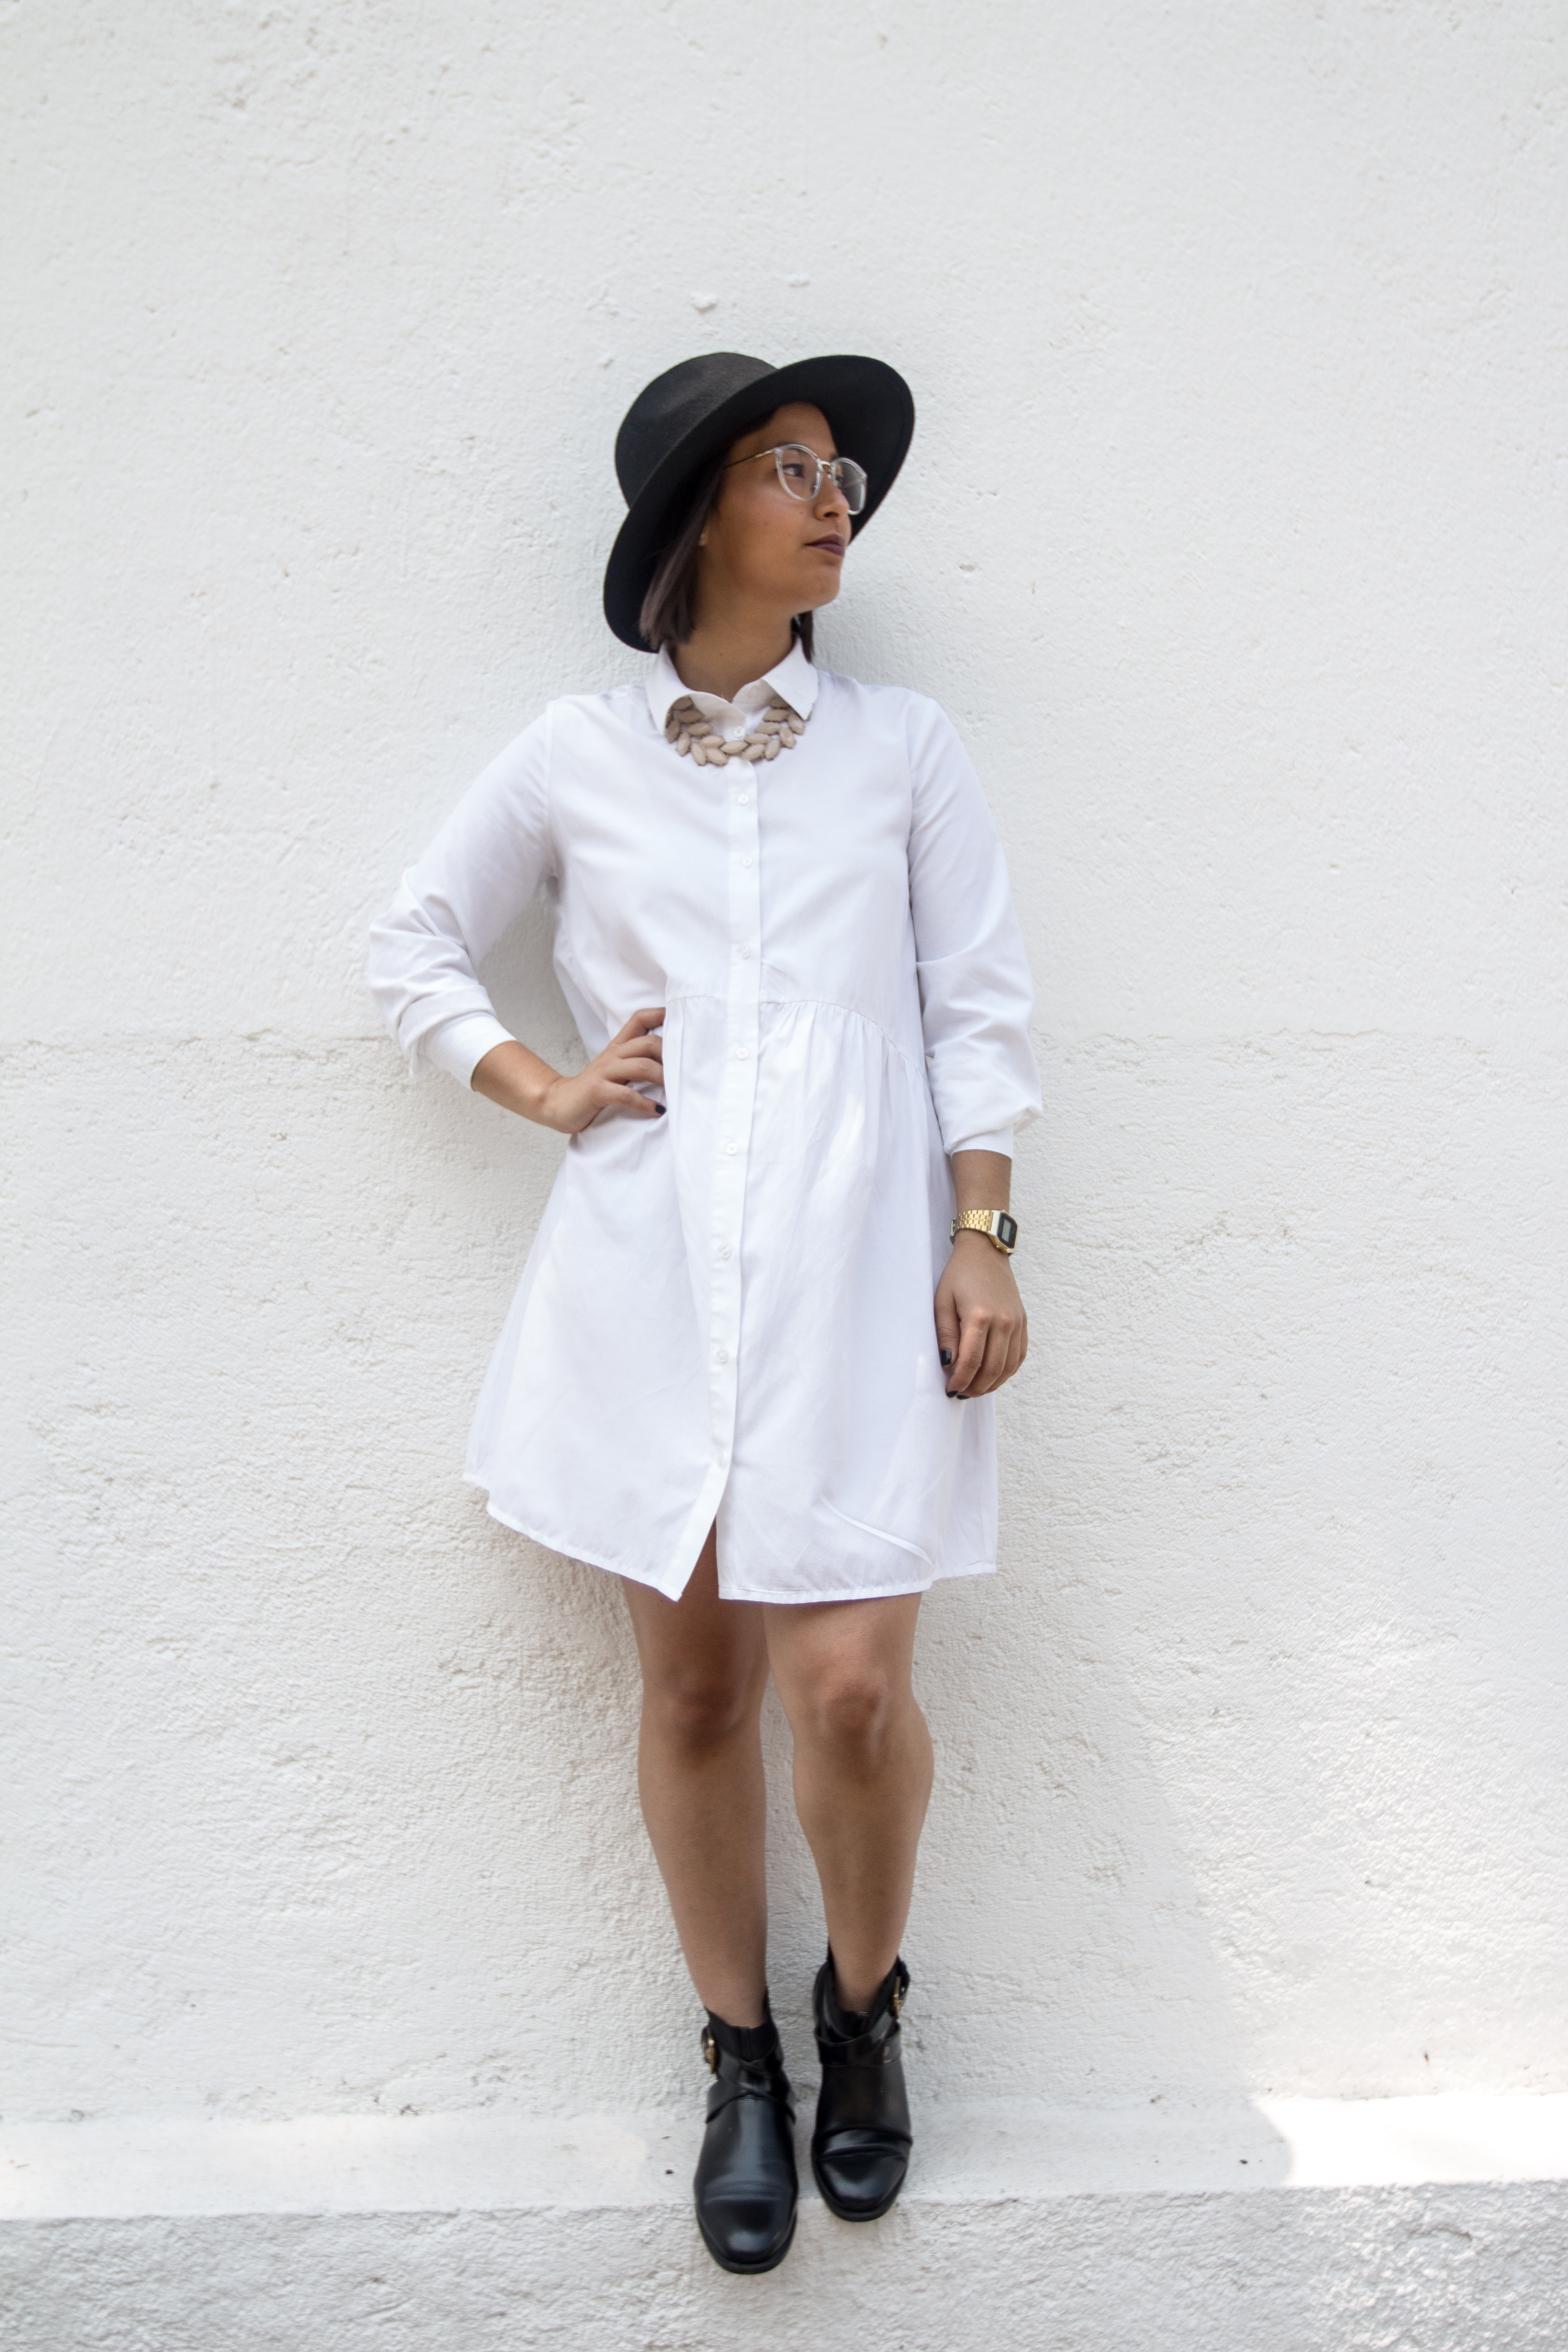 girl in white dress and hat